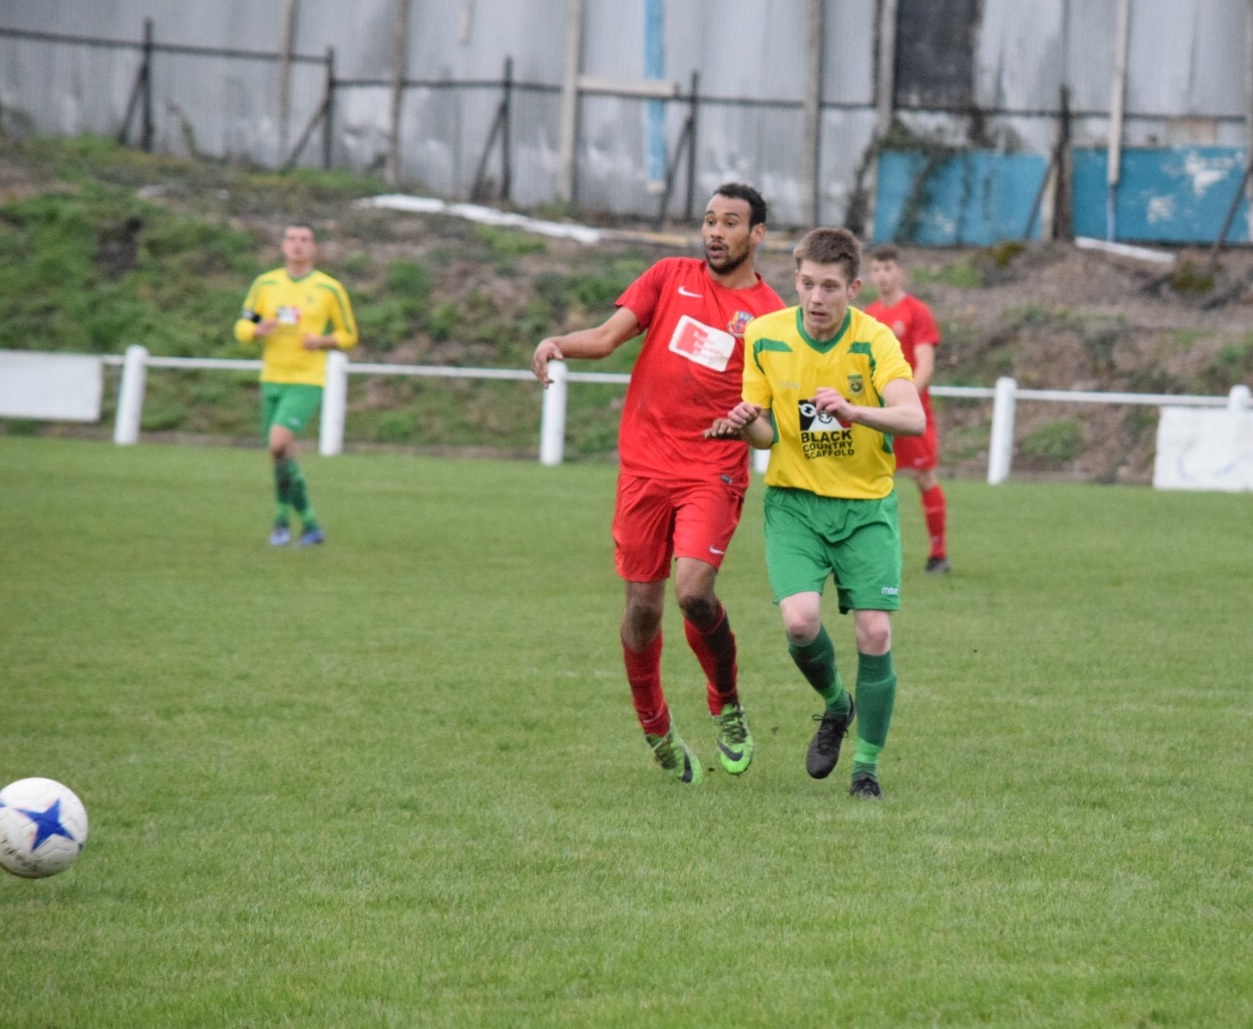 Gornal Athletic's Matt Foster in action against Willenhall. Photo by Leanne Shakespear